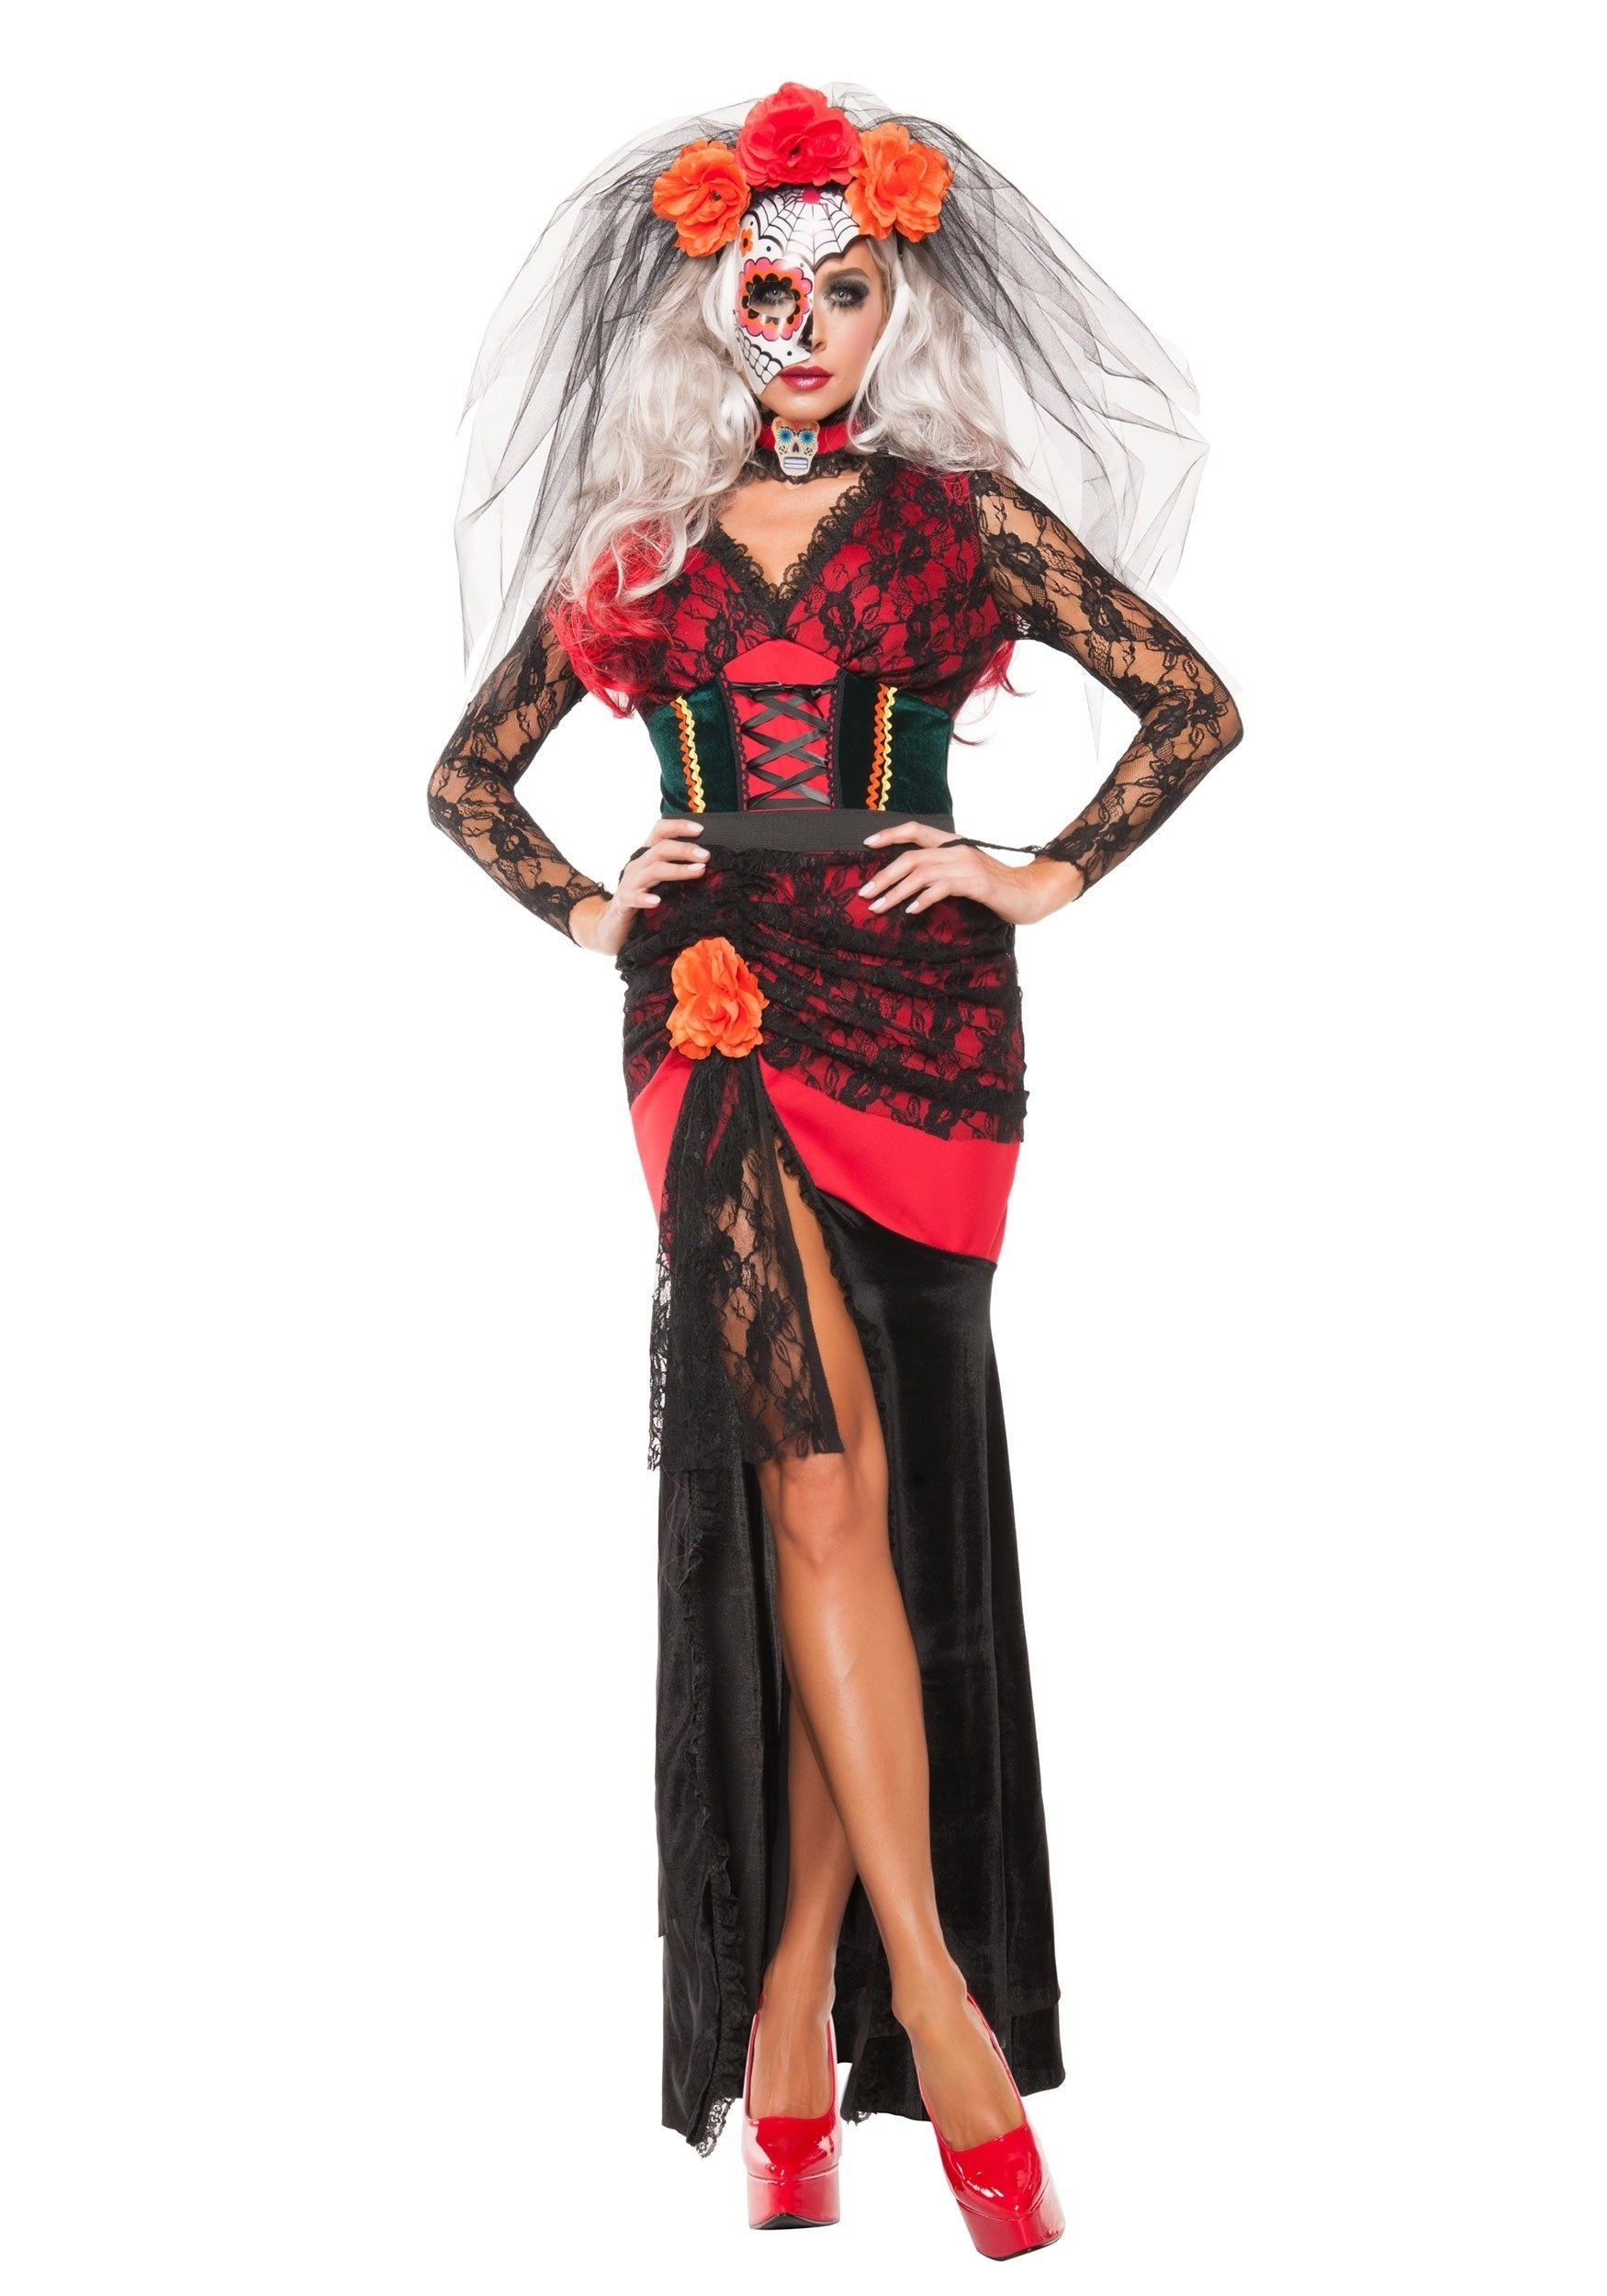 10 Nice Day Of The Dead Costumes Ideas womens day of the dead darling costume 1 2020